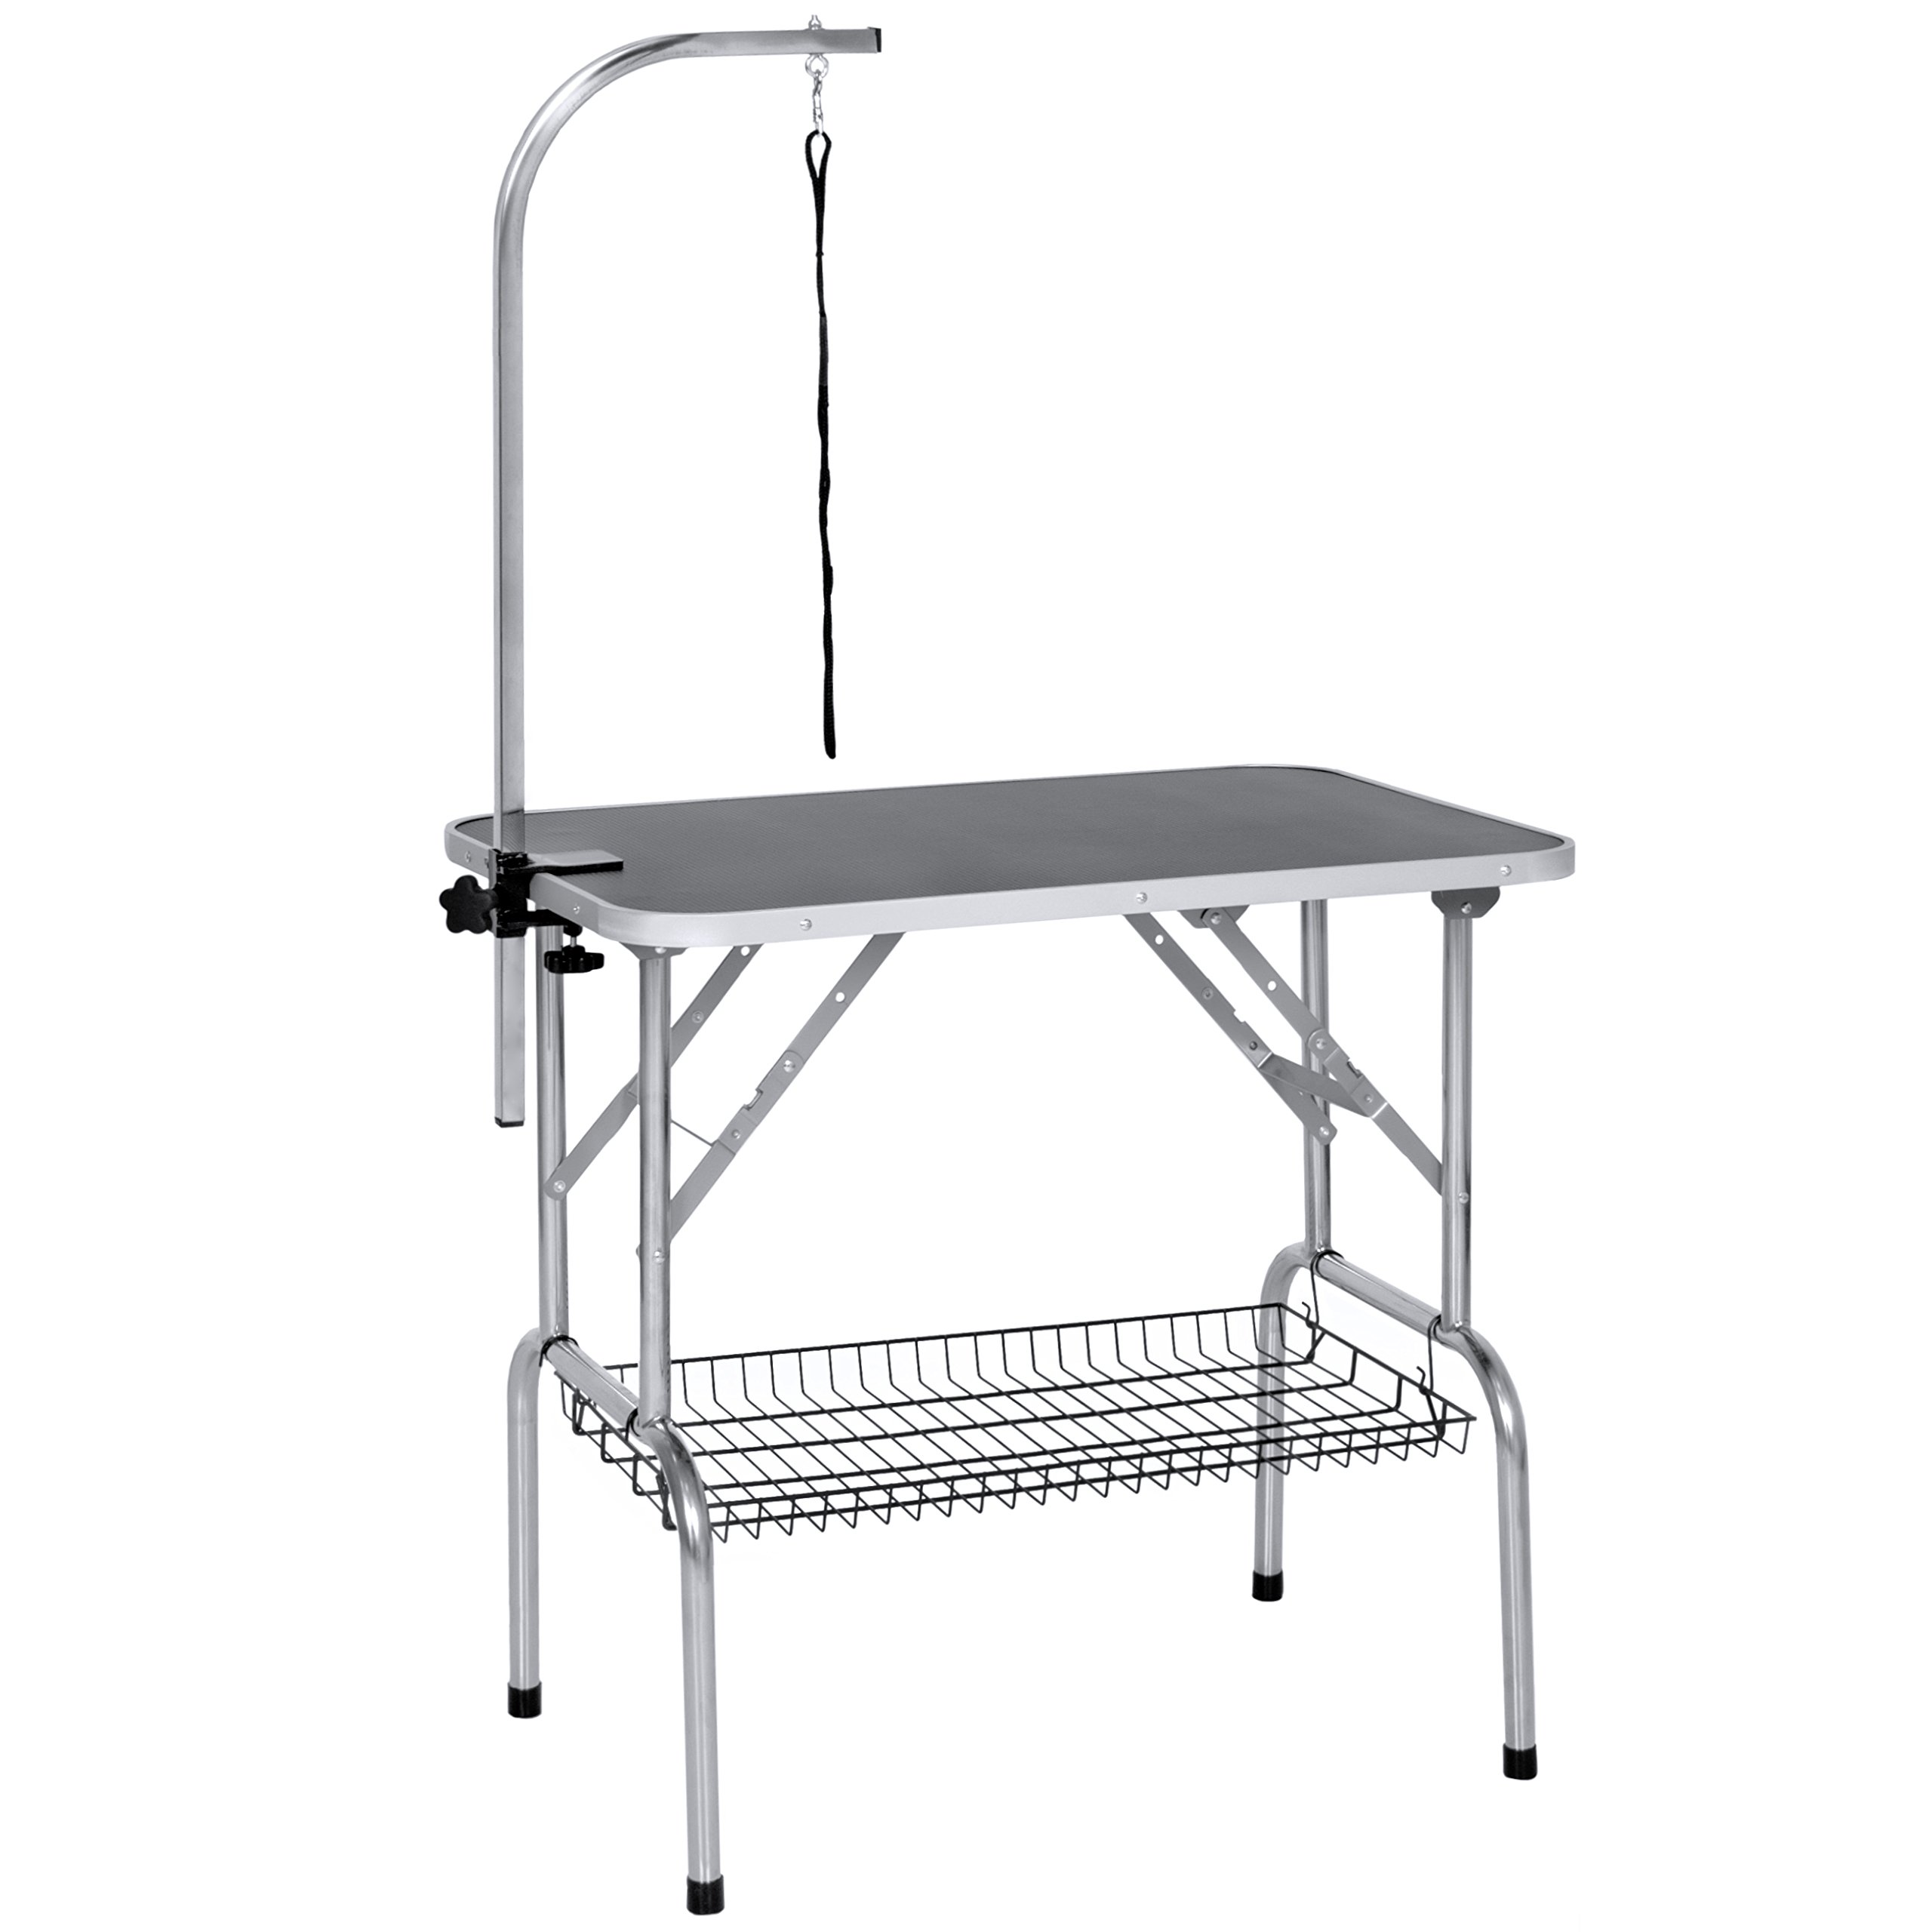 Best Choice Products 21'' x 35'' Pet Supplies Cat Dog Folding Grooming Table W/ Clamp-On Adjustable Arm